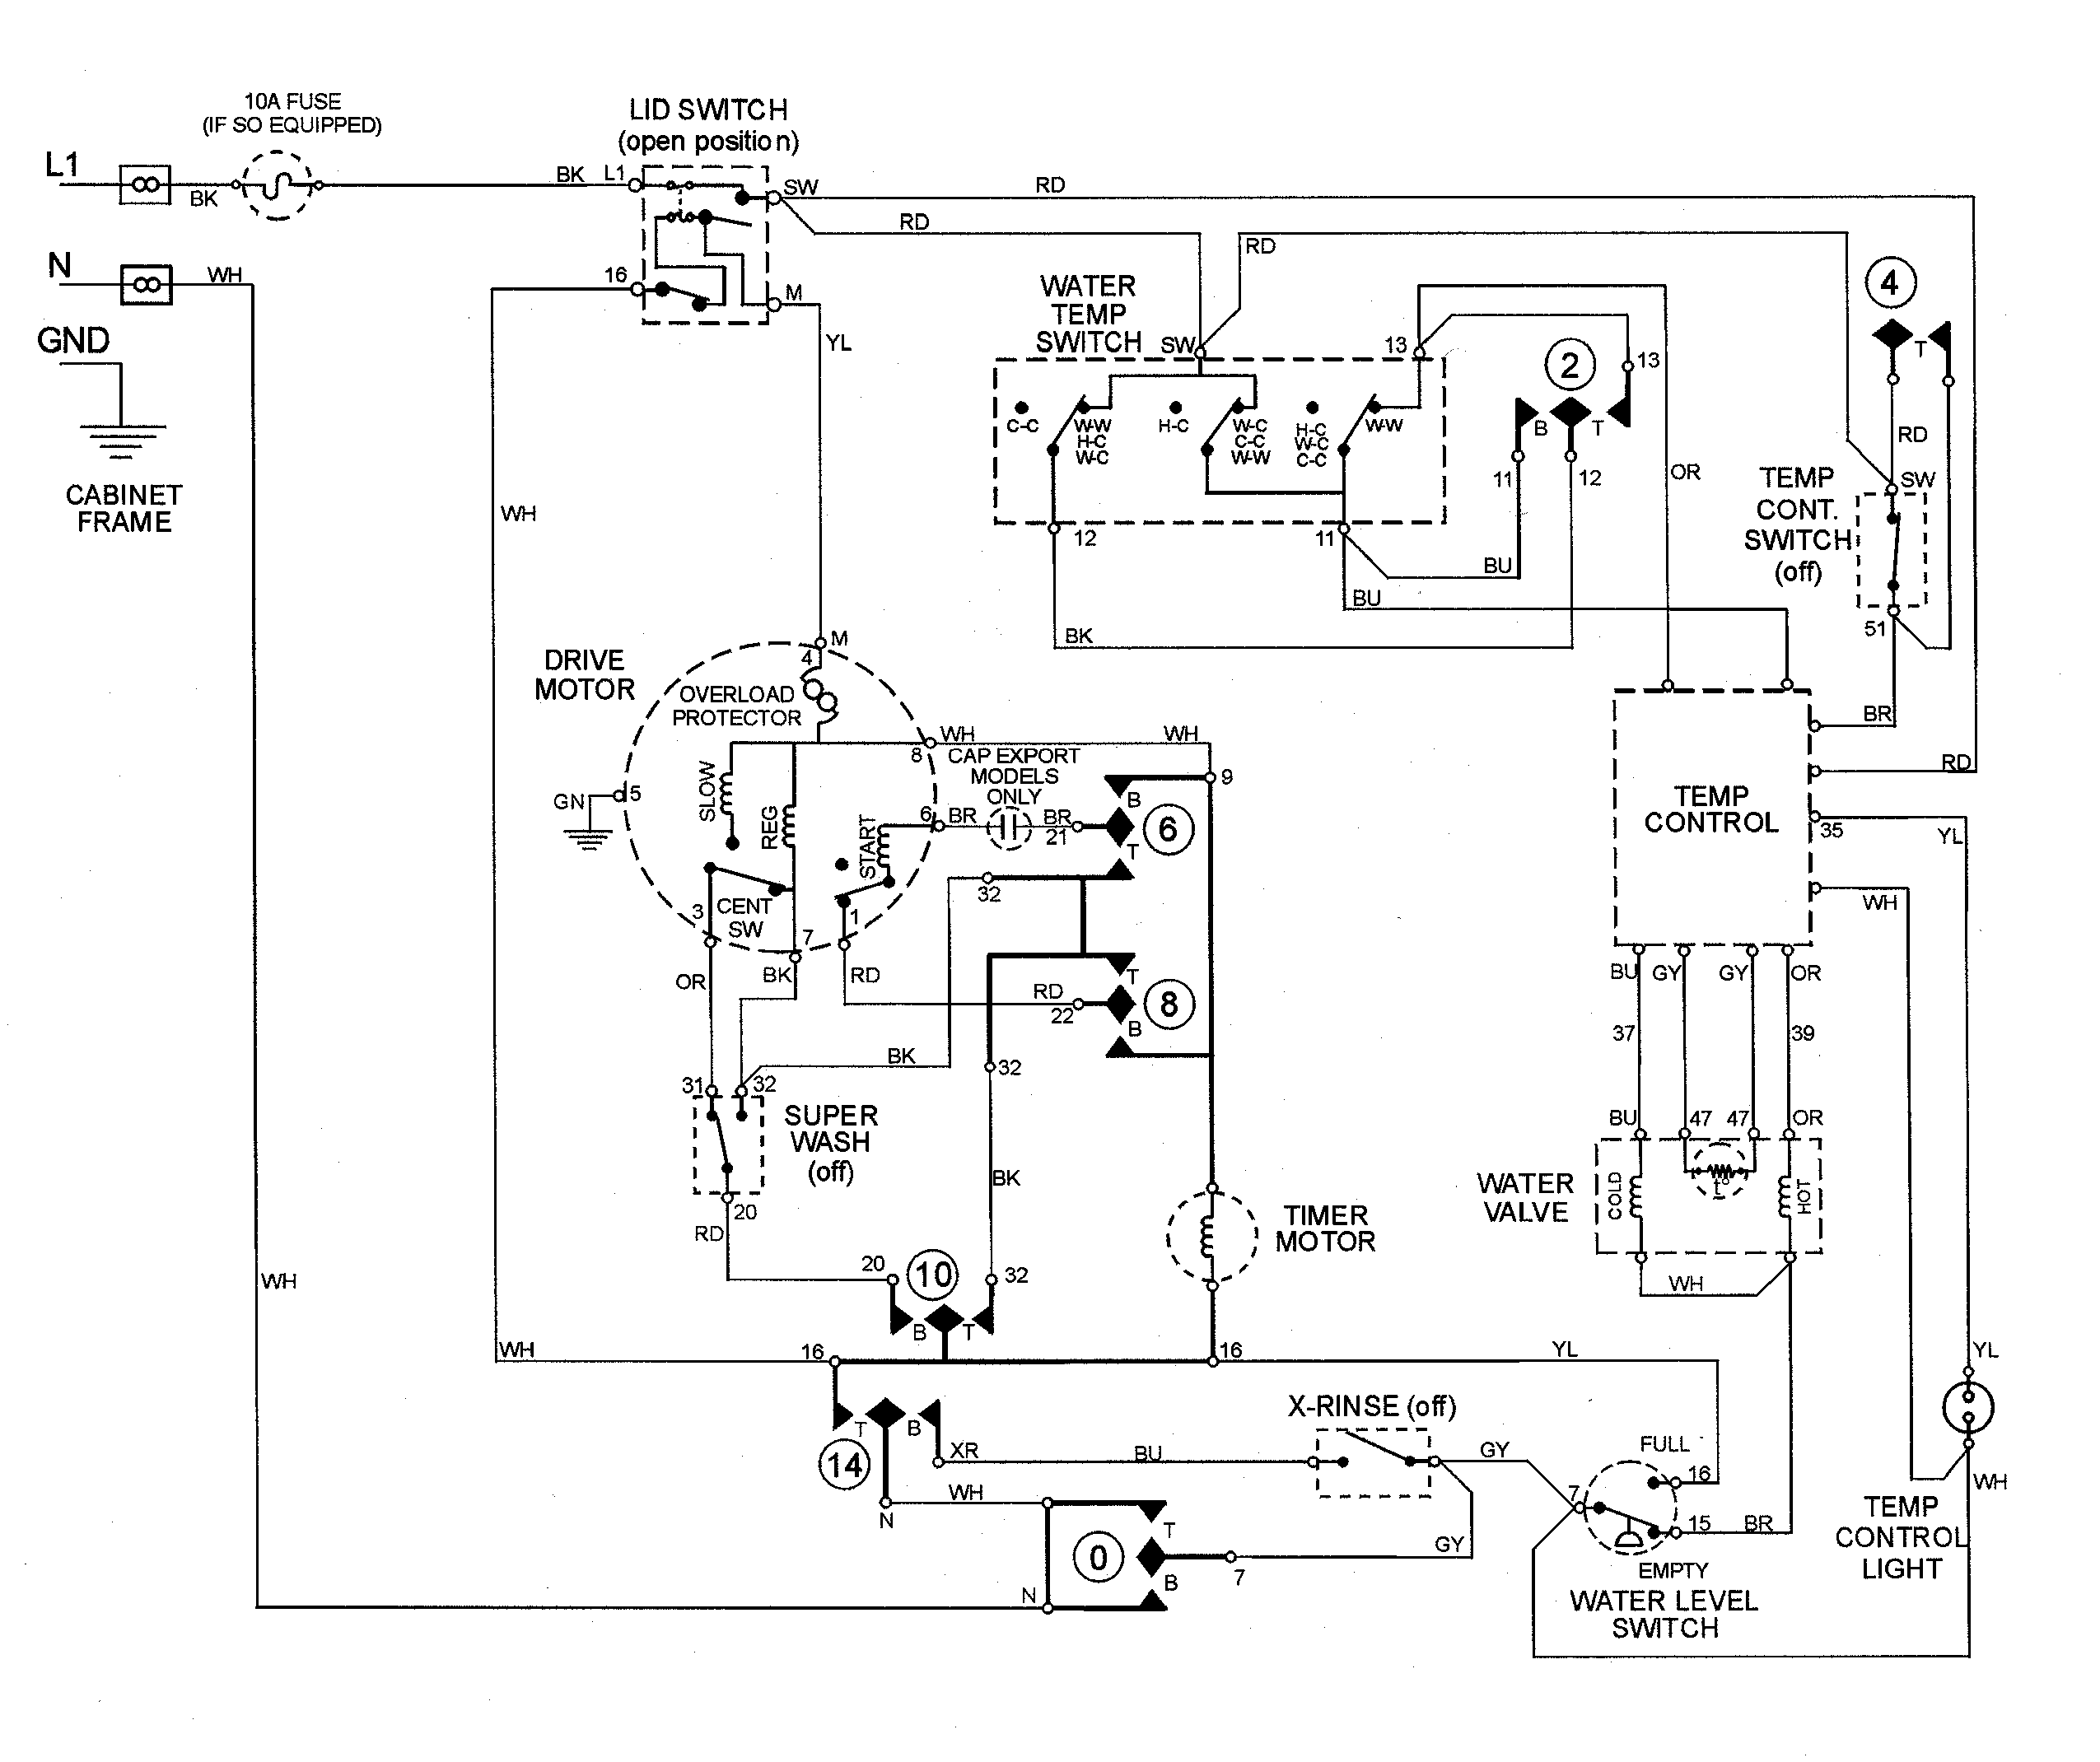 dbfe84c1294a289a6a6d42ba64109ee4 ge washer wiring diagram ge profile washer wiring diagram \u2022 indy500 co ge profile microwave wiring diagram at panicattacktreatment.co